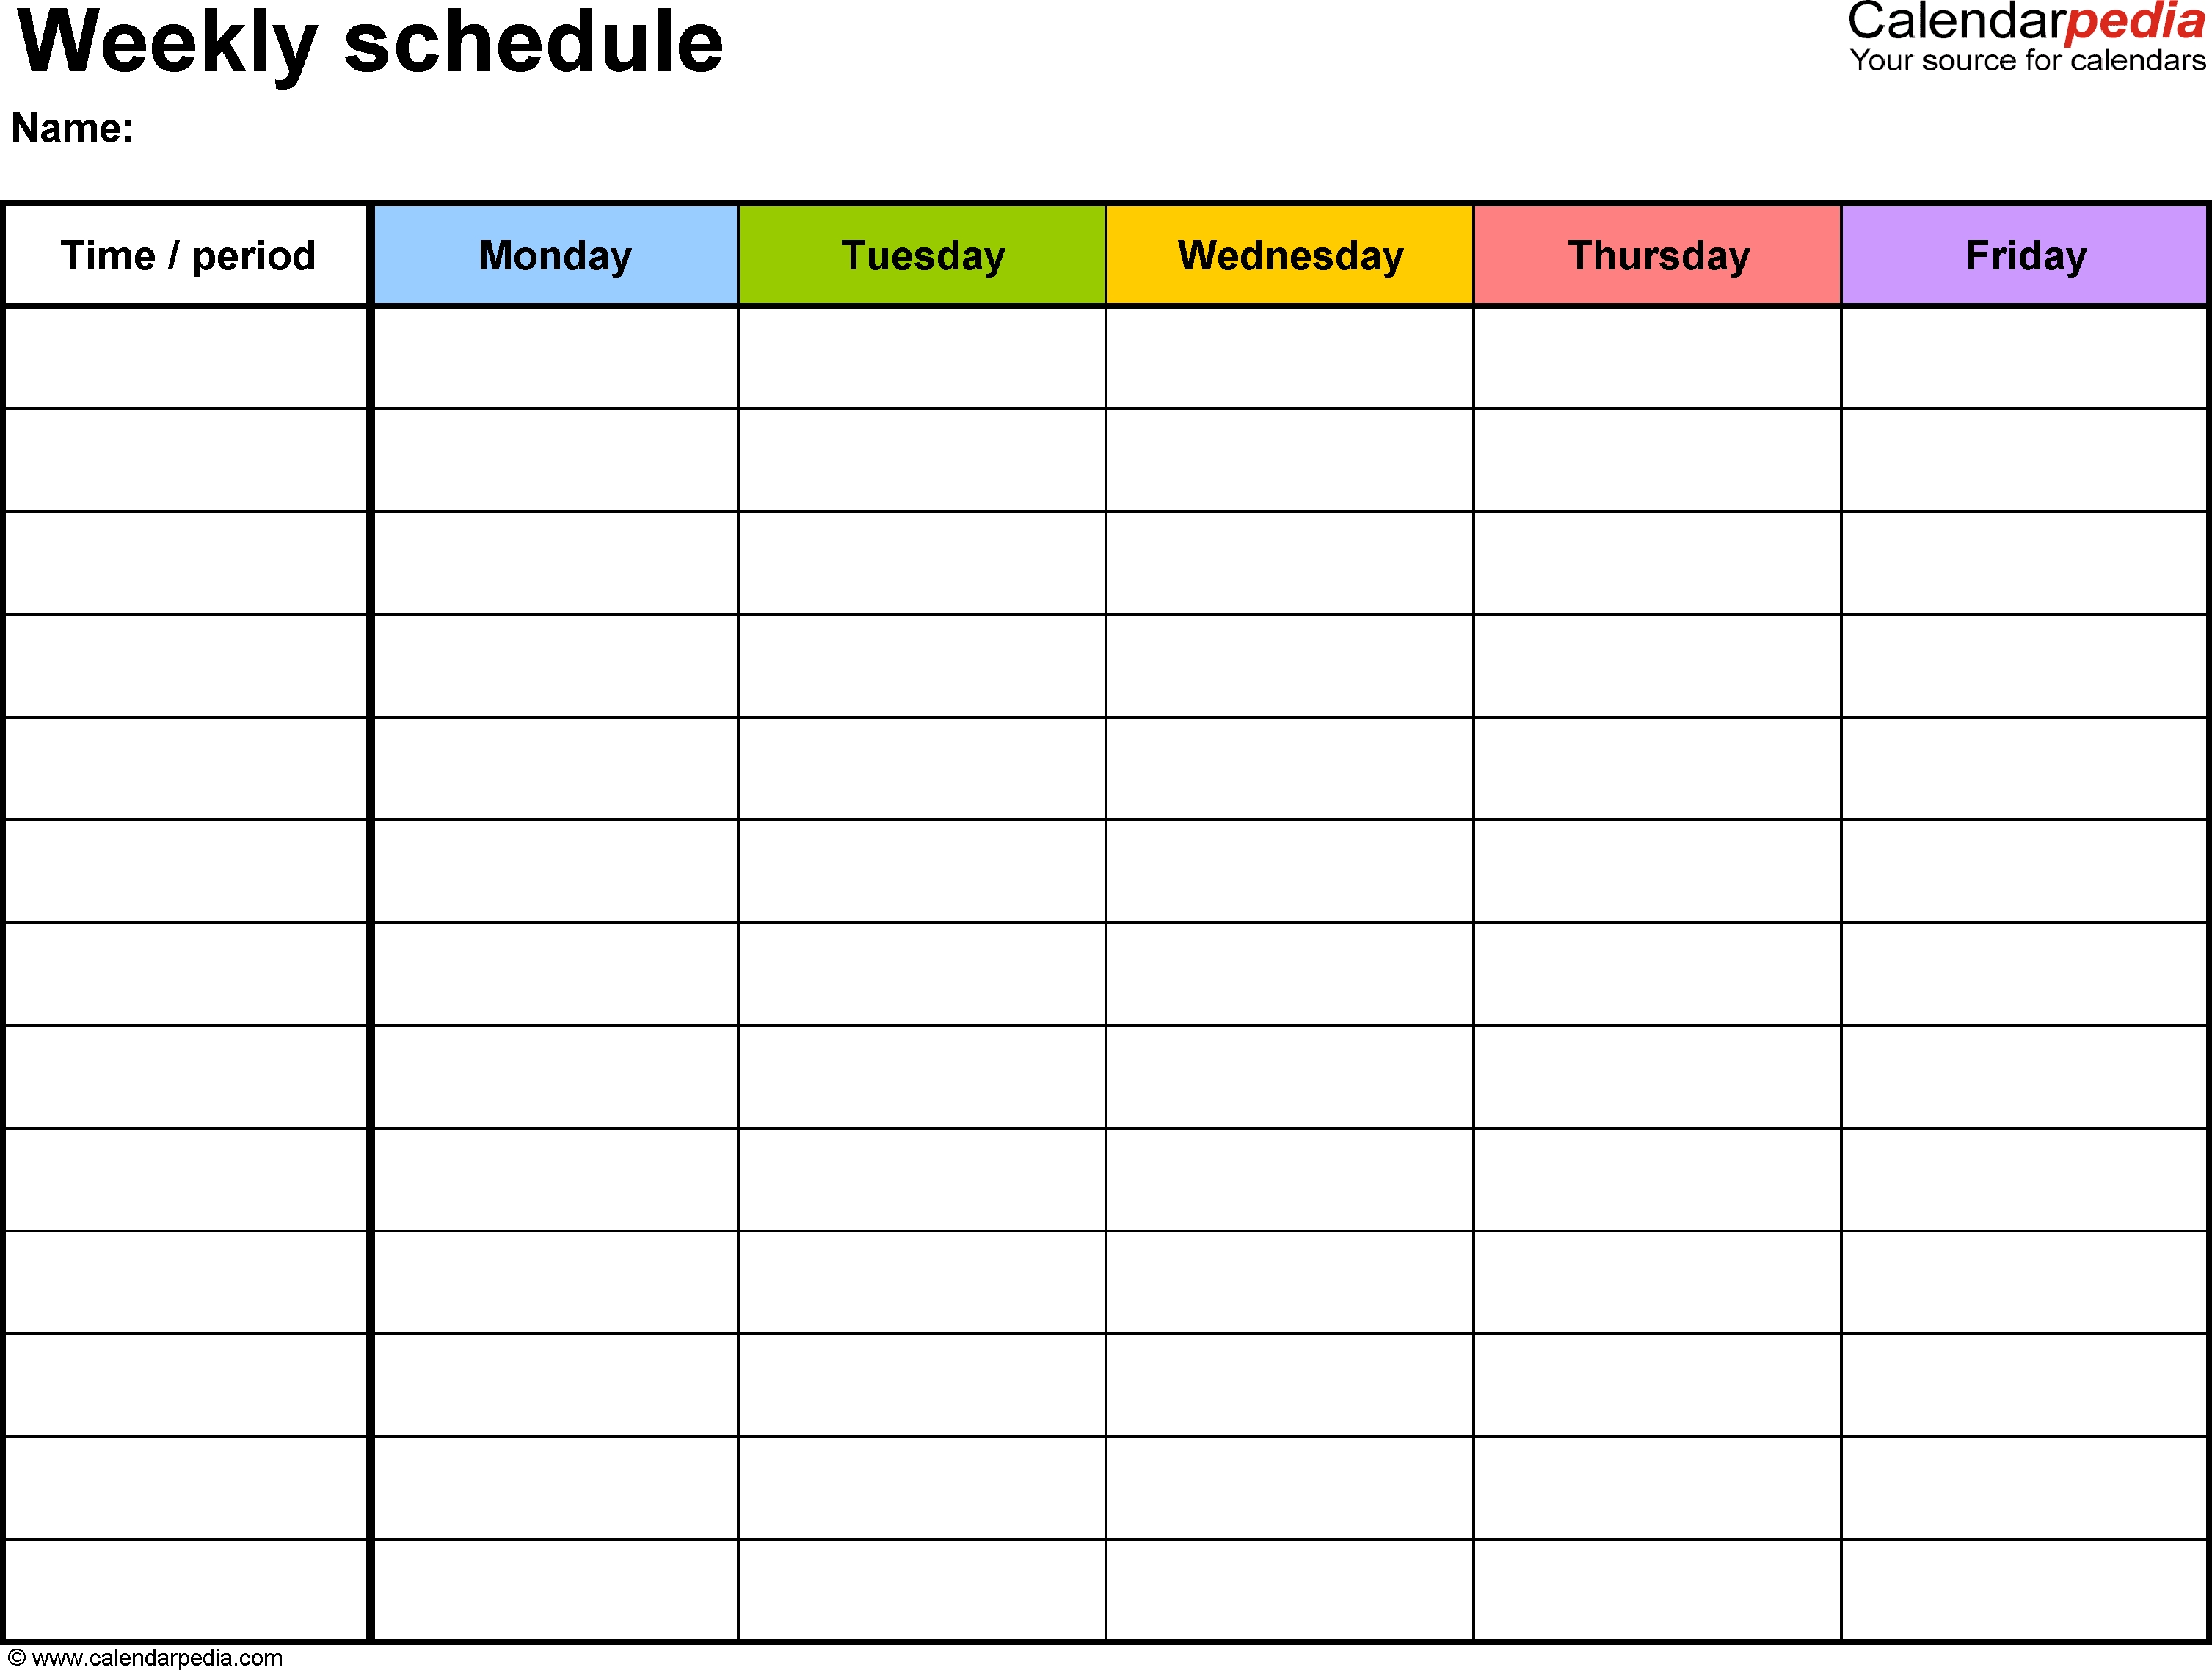 Free Weekly Schedule Templates For Word - 18 Templates with Blank Weekly Calendar Monday To Friday